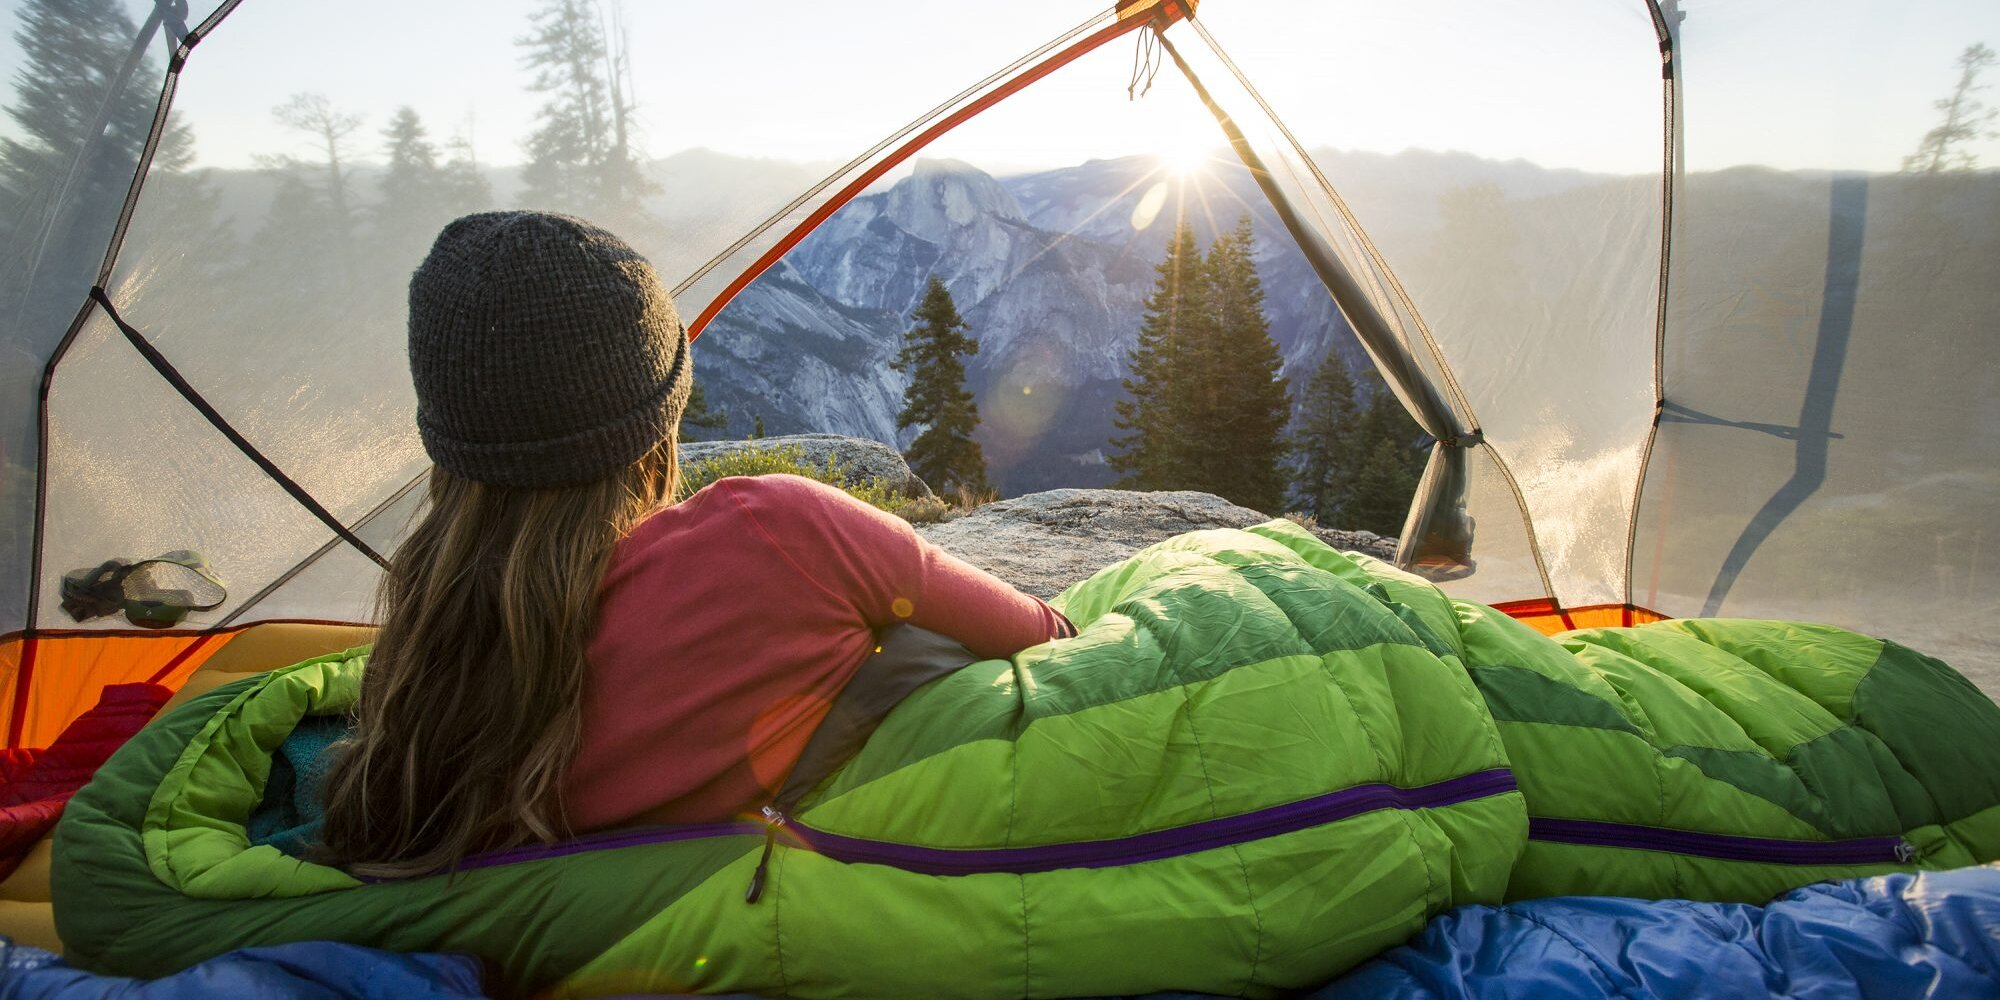 8 Spectacular U.S. Campgrounds to Explore This Summer With Family, Friends, or Solo